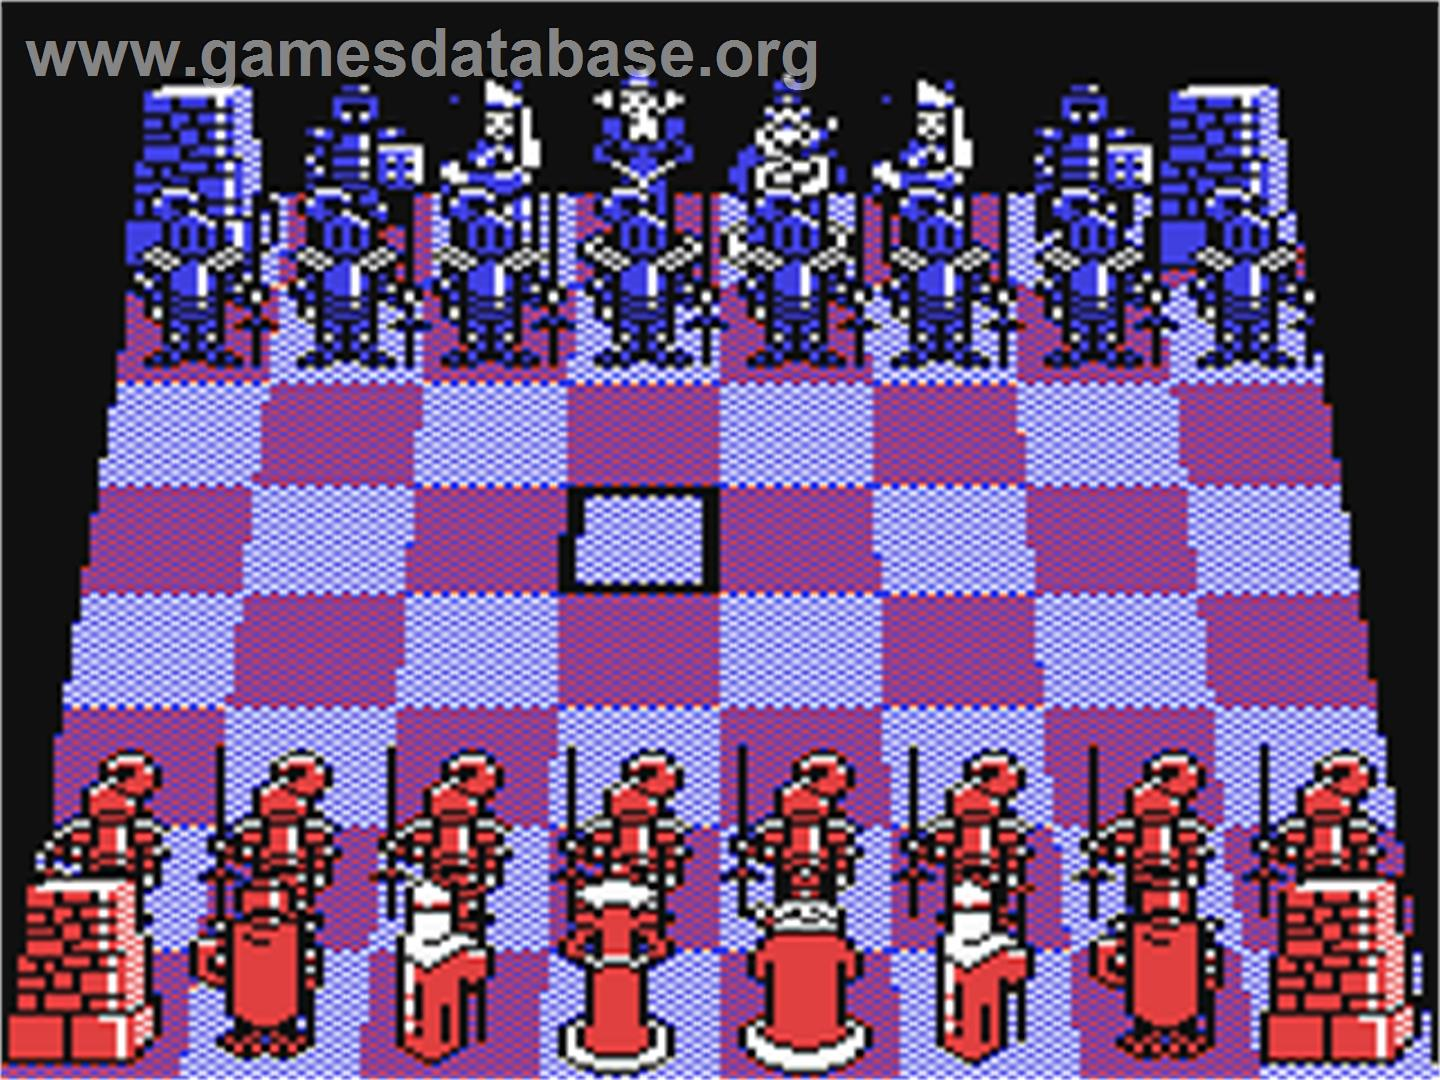 Battle chess commodore 64 games database for Battle chess